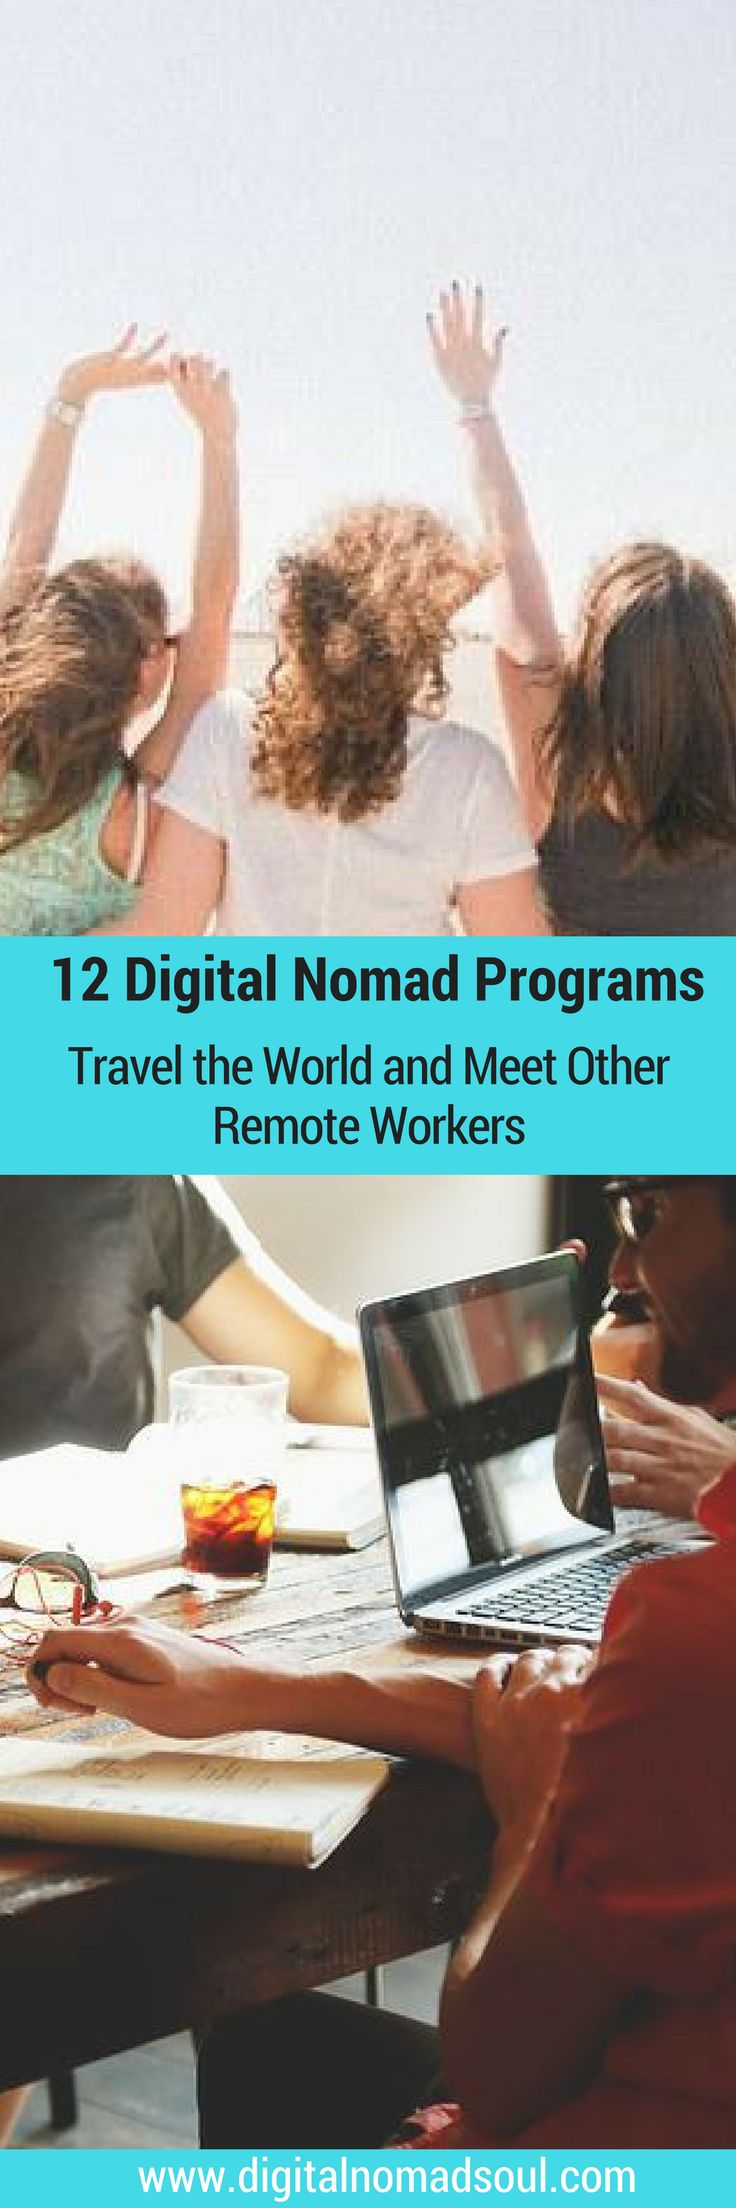 Do you want to travel the world with other like-minded digital nomads? Check out these awesome programs and retreats for location-independent workers!